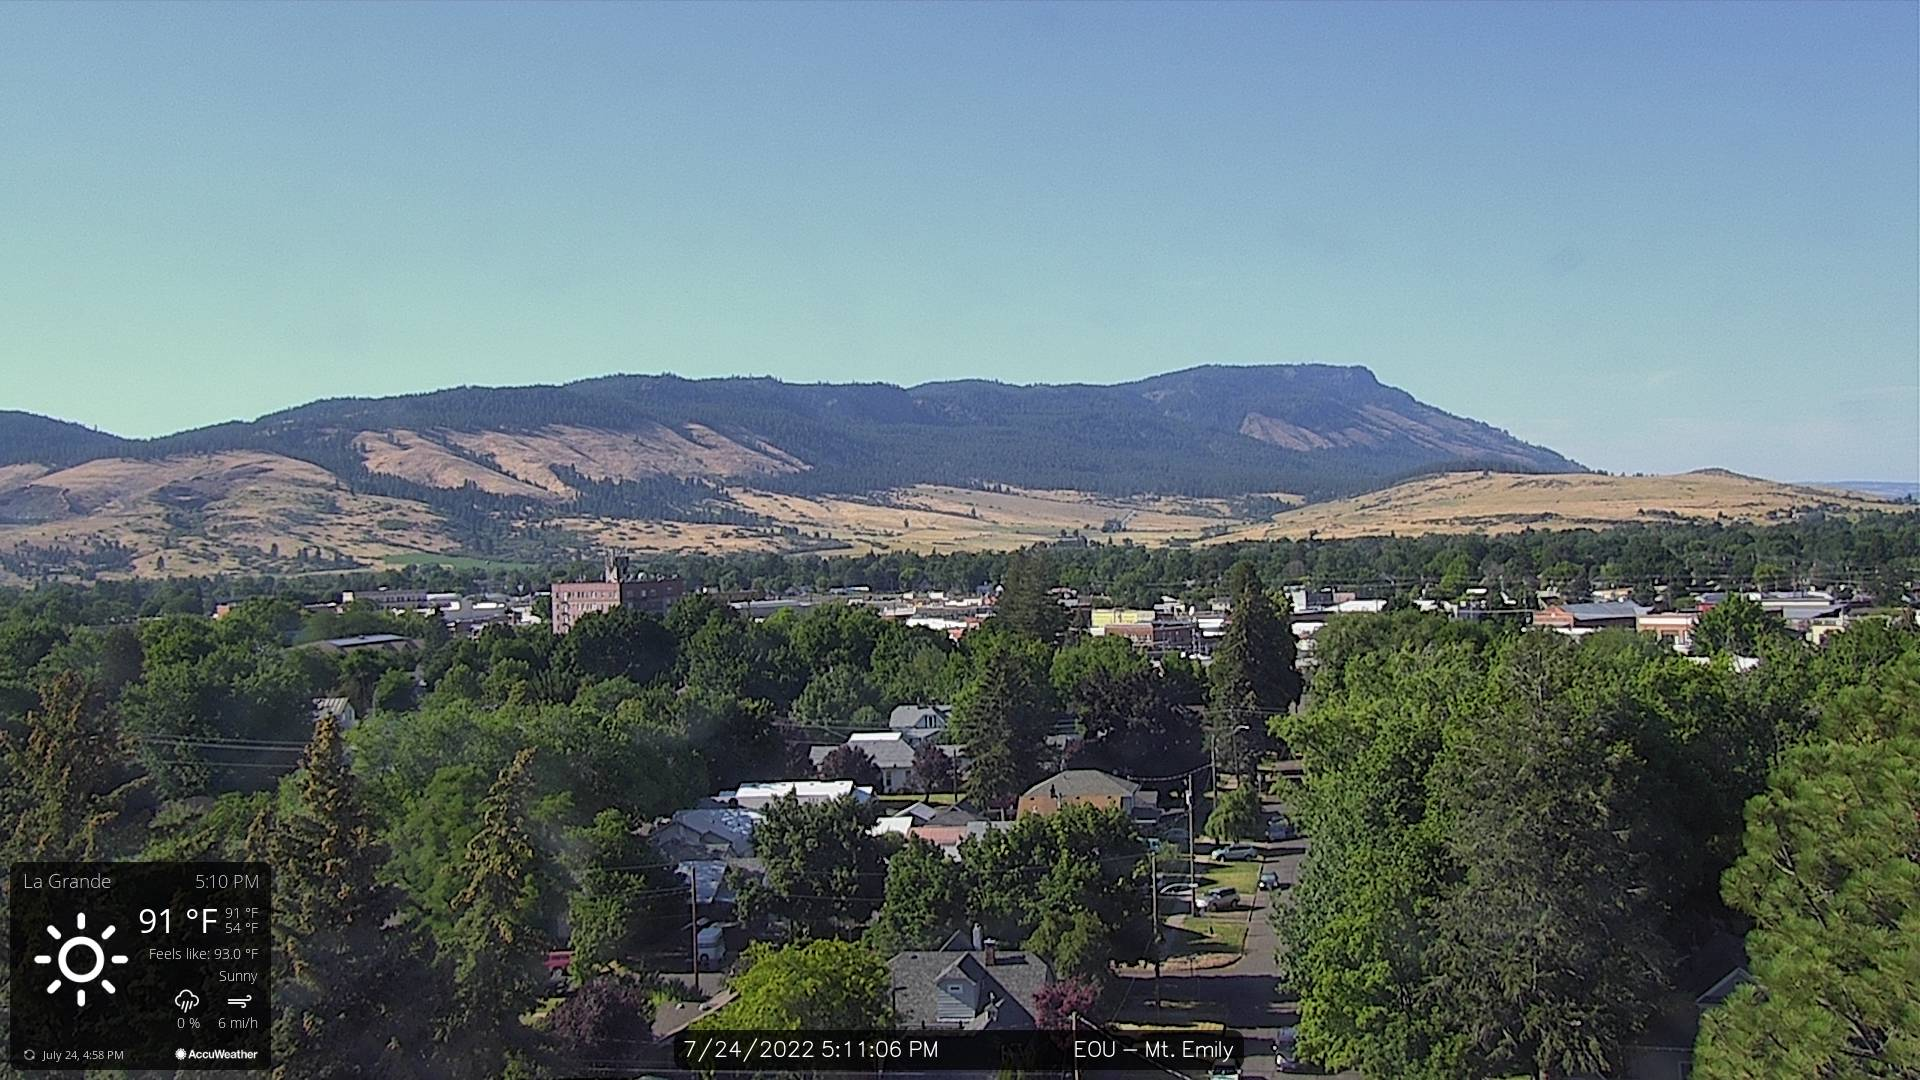 La Grande Mount Emily Webcam - La Grande, OR